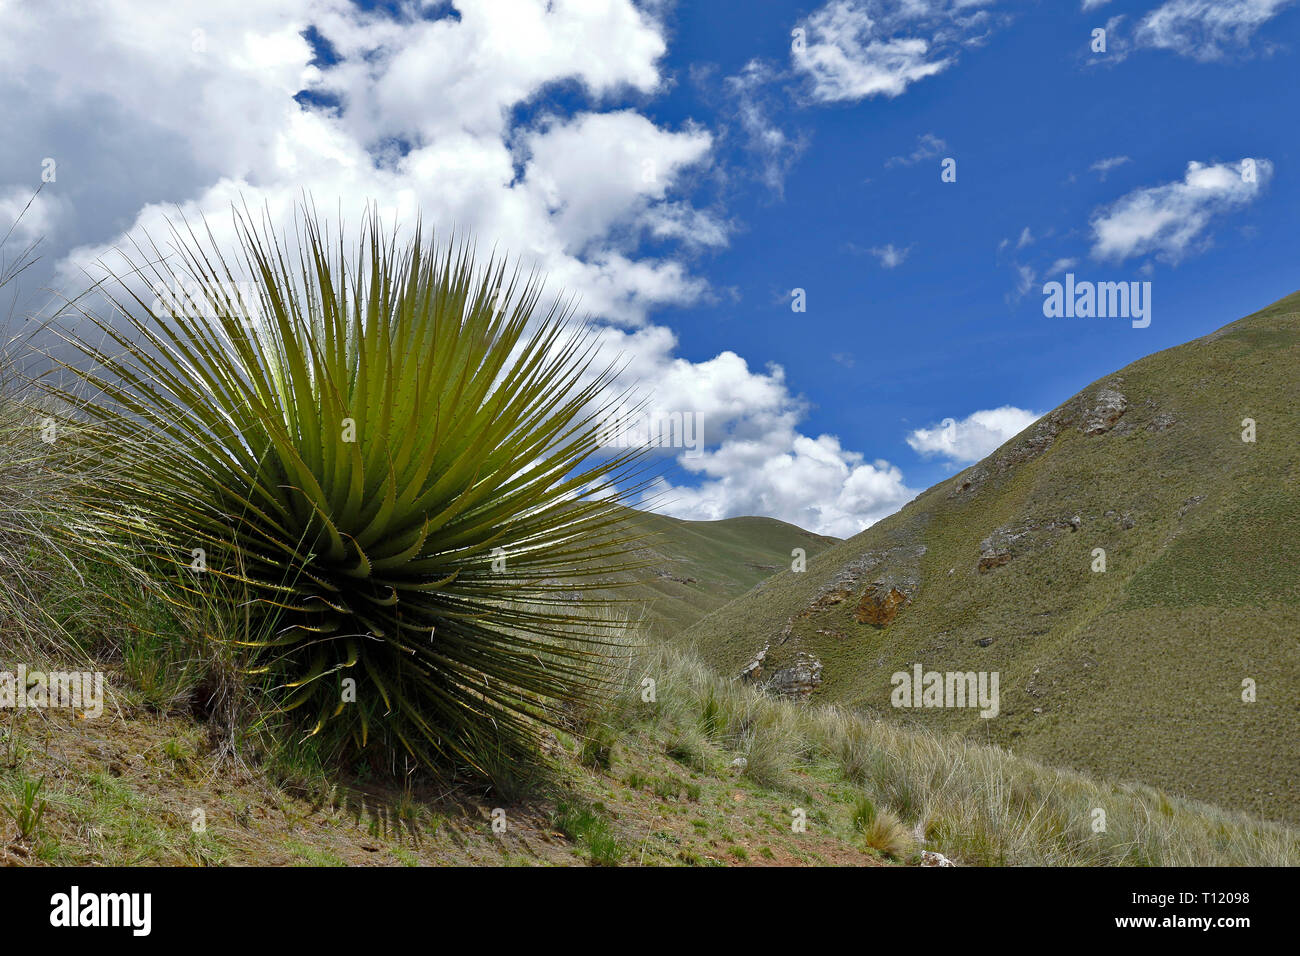 Beautiful specimen of Titanca (Puya raimondii) a species of endemic flora of the Andean region of Peru and Bolivia; In this case, a detail of the plan Stock Photo